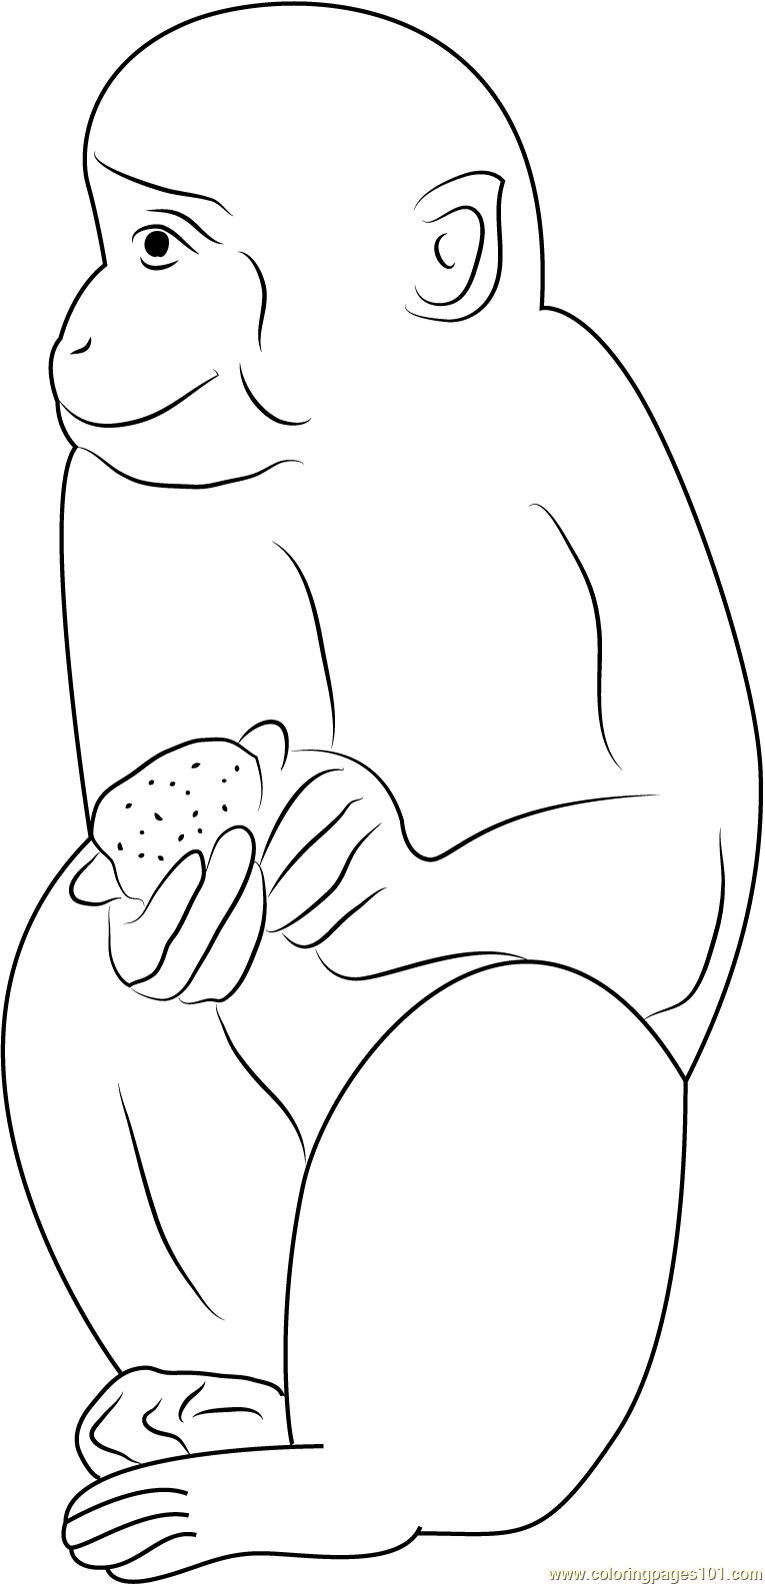 Indian Monkey Coloring Page Free Monkey Coloring Pages